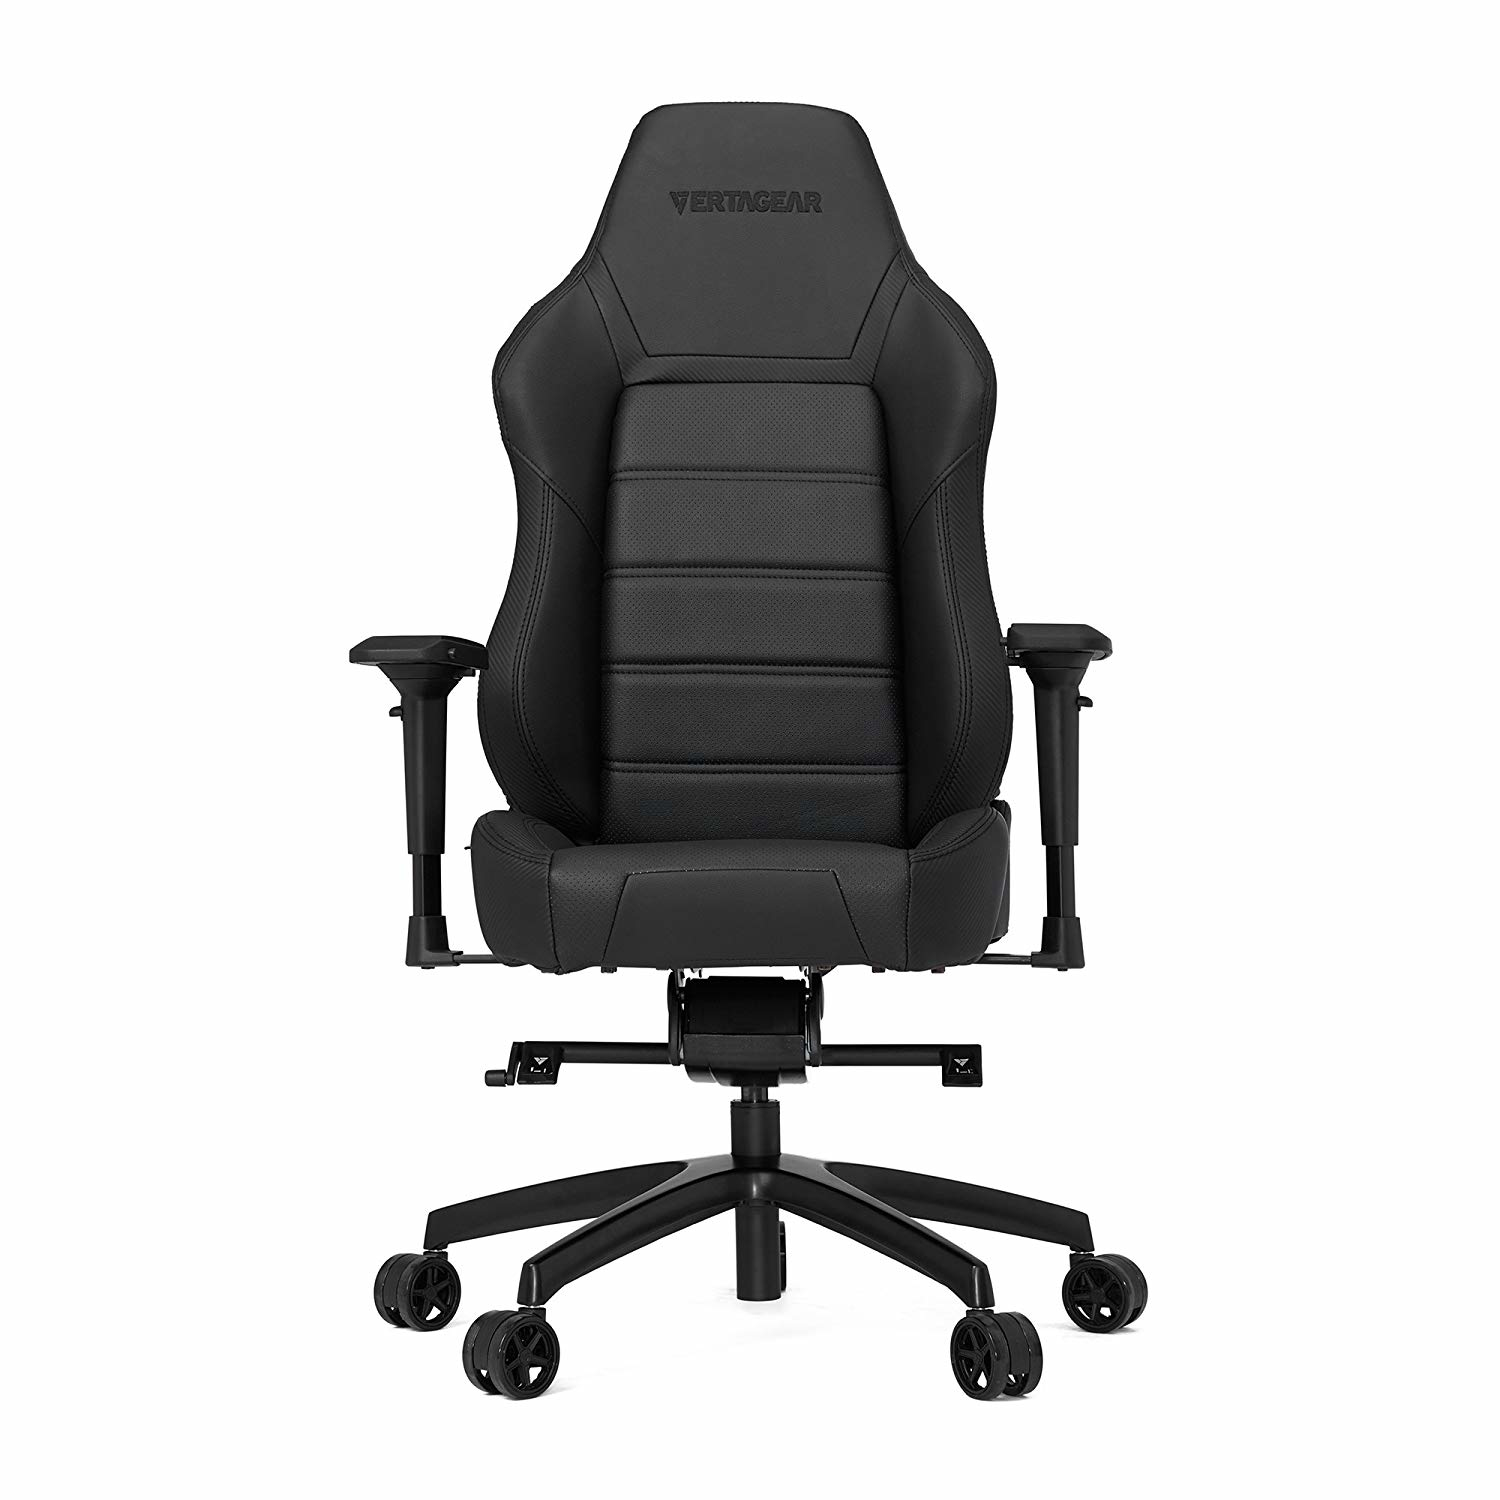 Vertagear VG-PL6000 Padded seat Padded backrest office/computer chair